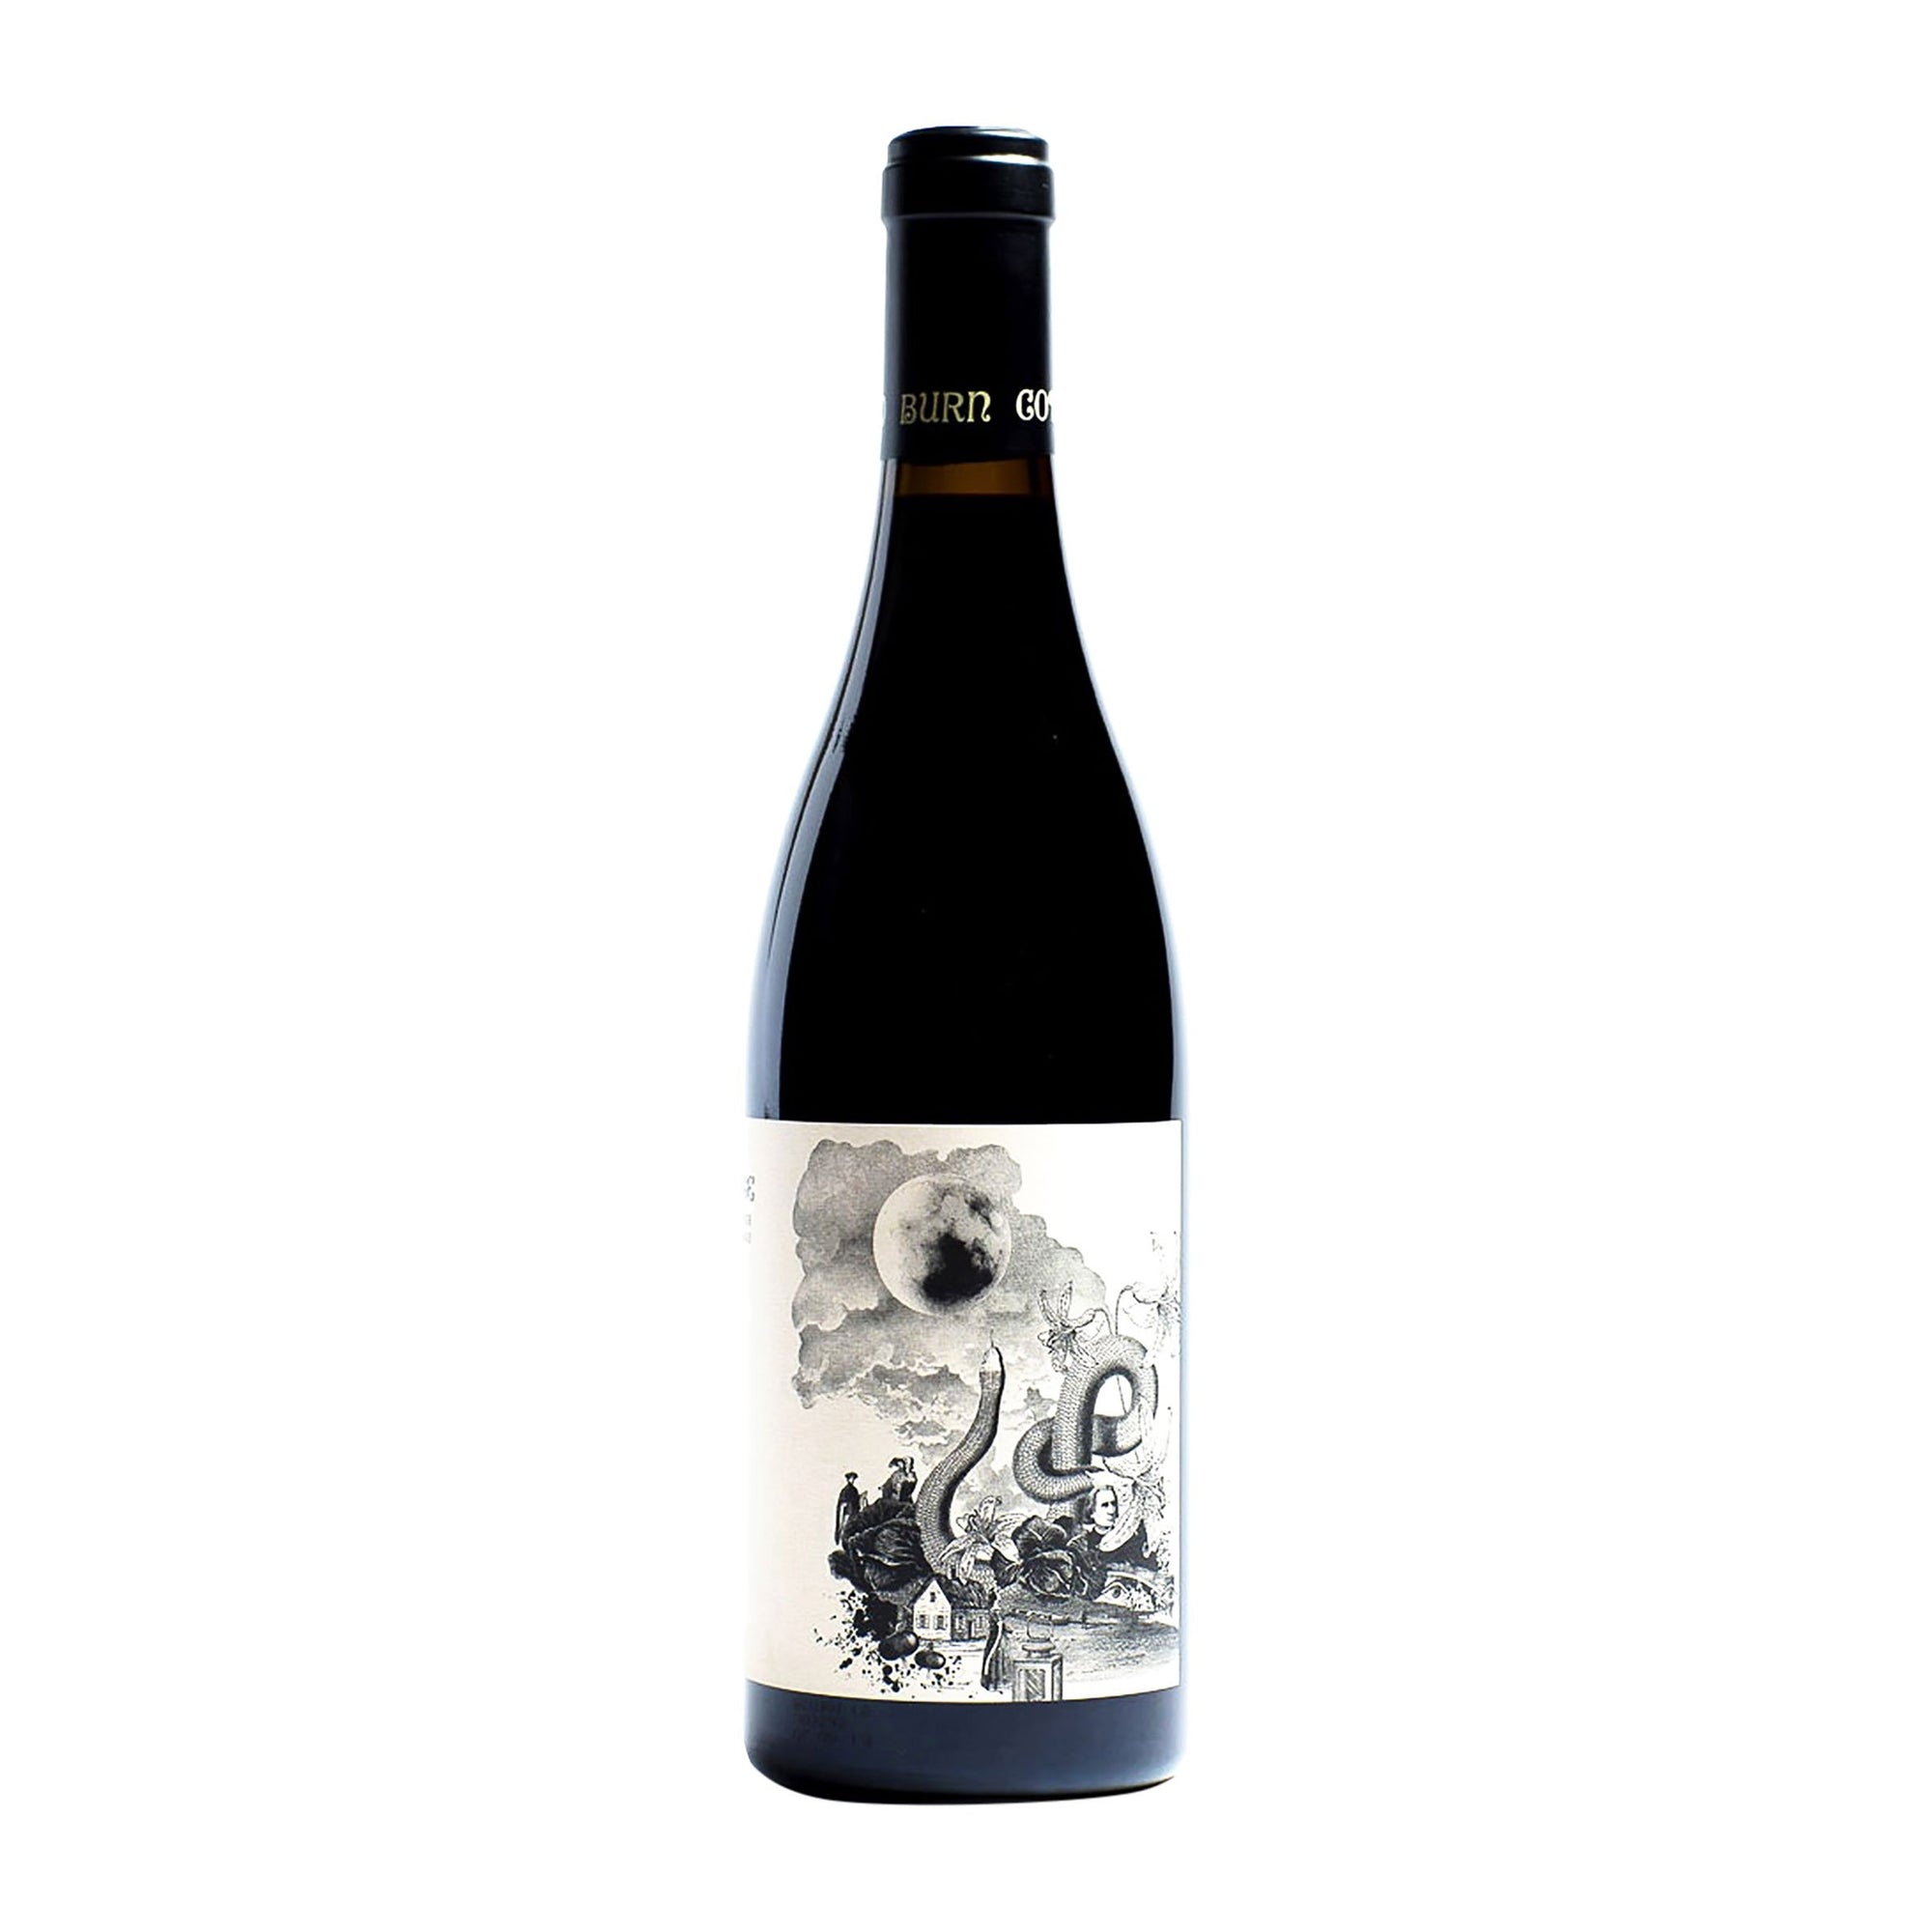 Red Wine Burn Cottage Central Otago Pinot Noir 2017 (4497174134807)